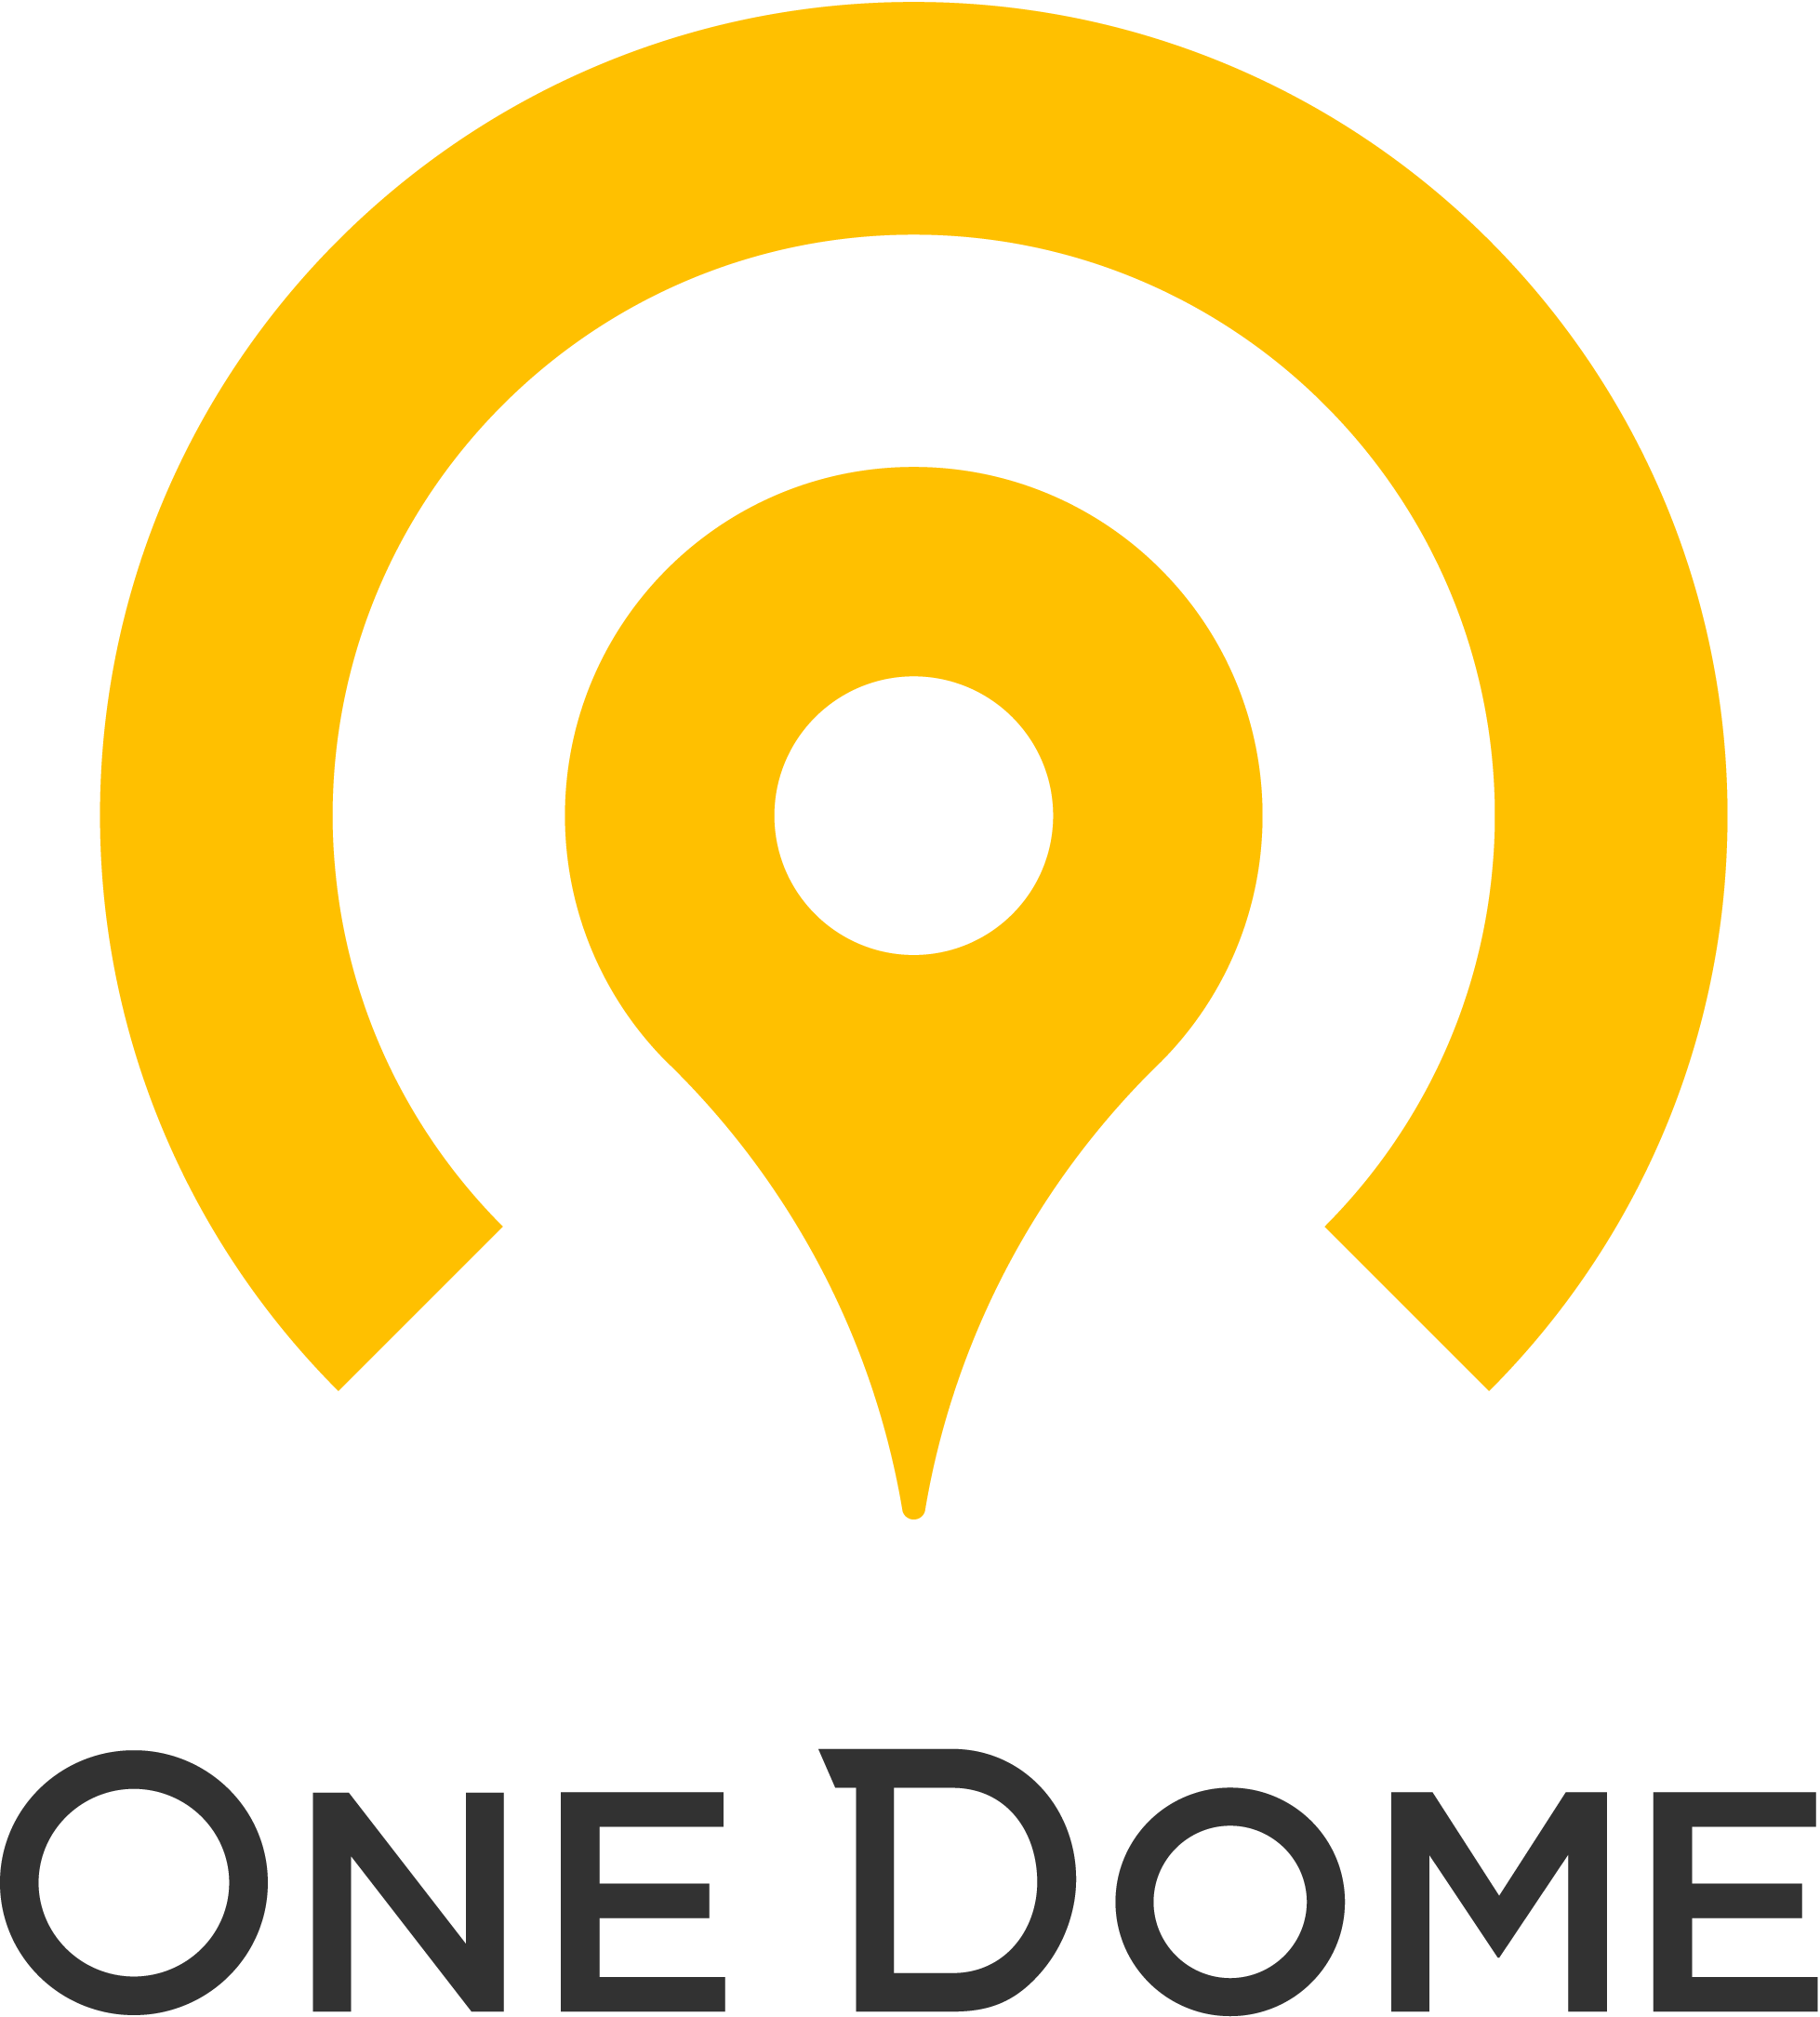 OneDome partnership announcement